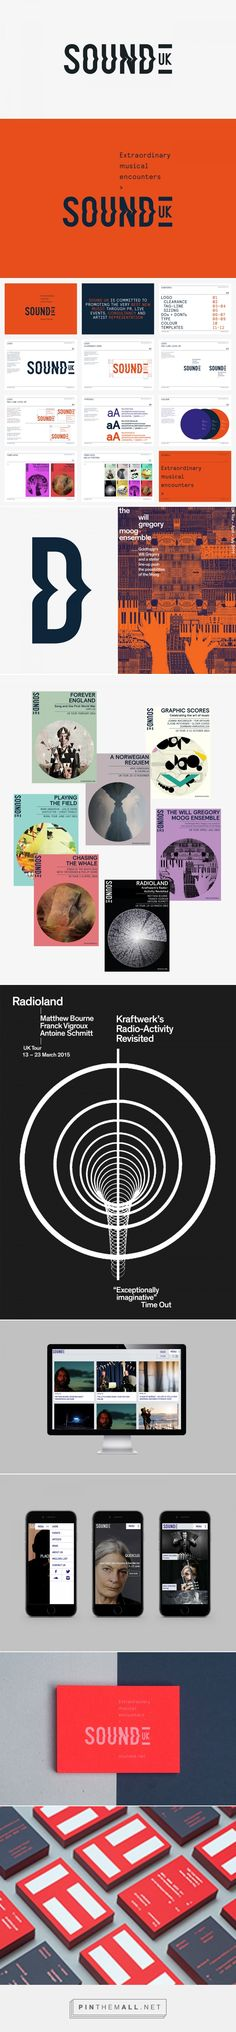 SOUND on Behance... - a grouped images picture - Pin Them All